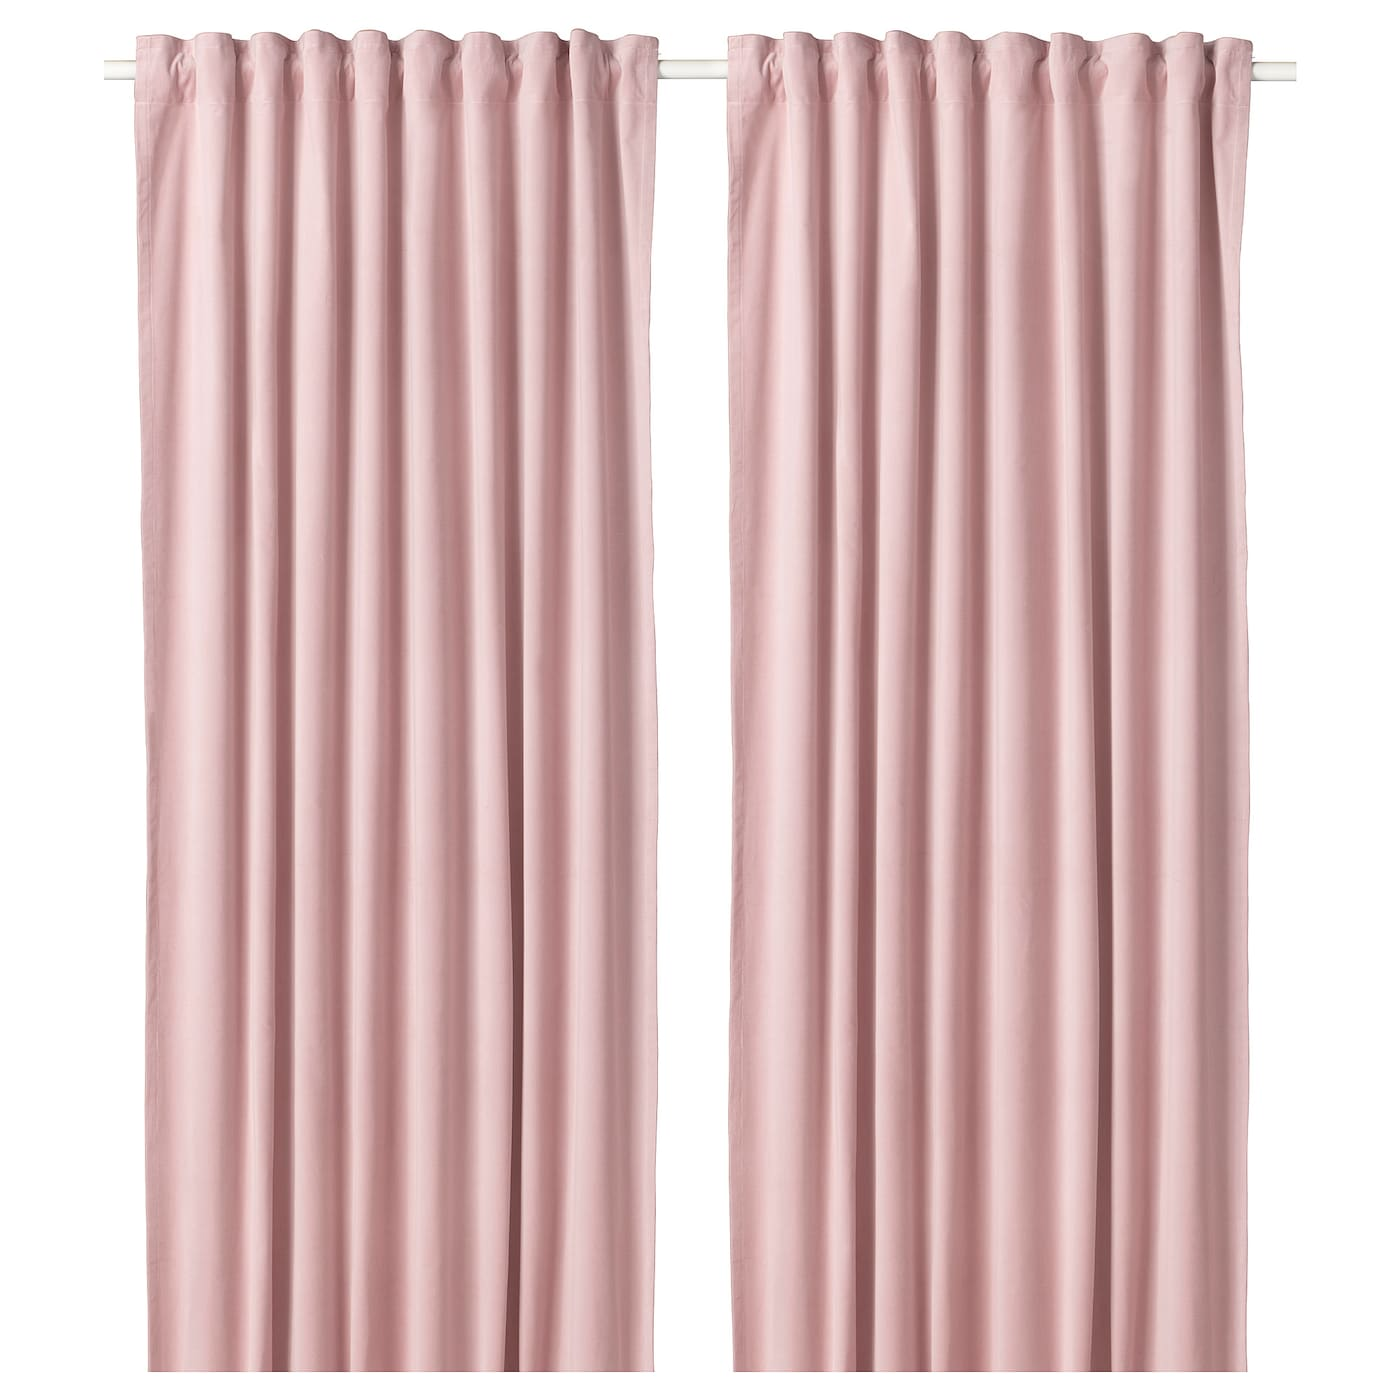 Ikea Sanela Curtains 1 Pair Cotton Velvet Gives Depth To The Colour And Softness